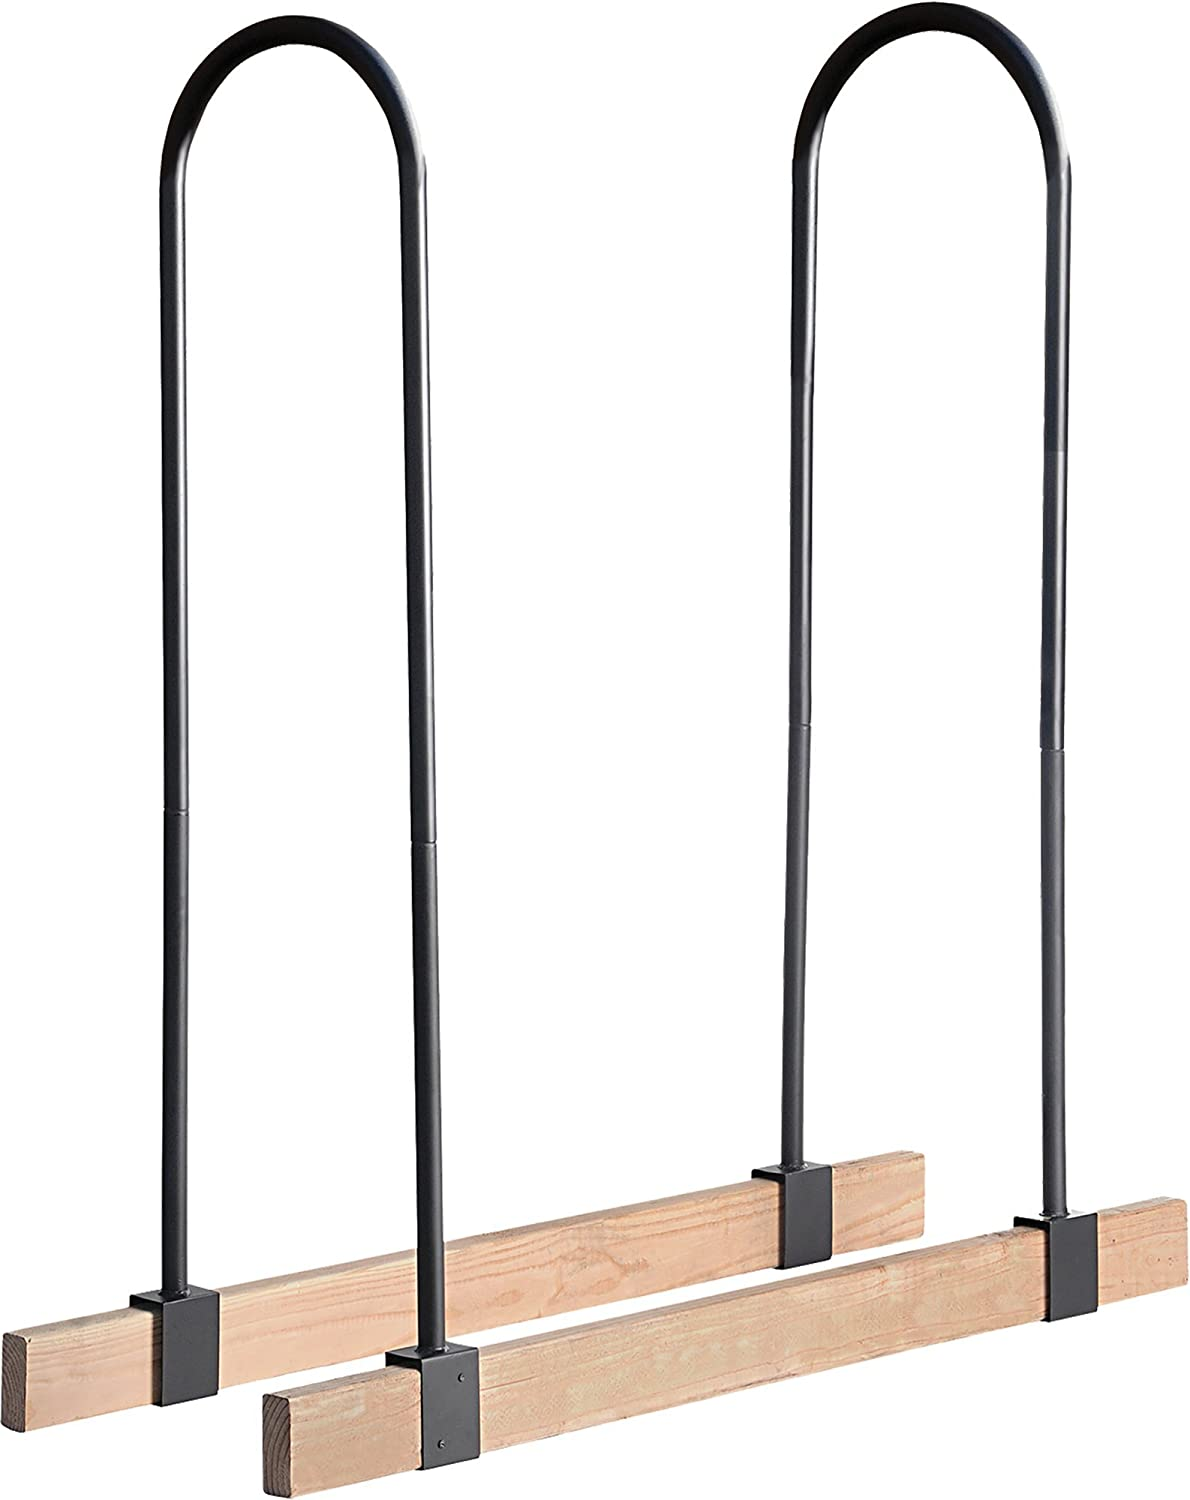 Home-Complete Firewood Storage Rack- Steel Wood Pile Holder for Stacking Cut Logs for Indoor Outdoor Use, Fireplaces, Firepits, Backyard 4 Ft